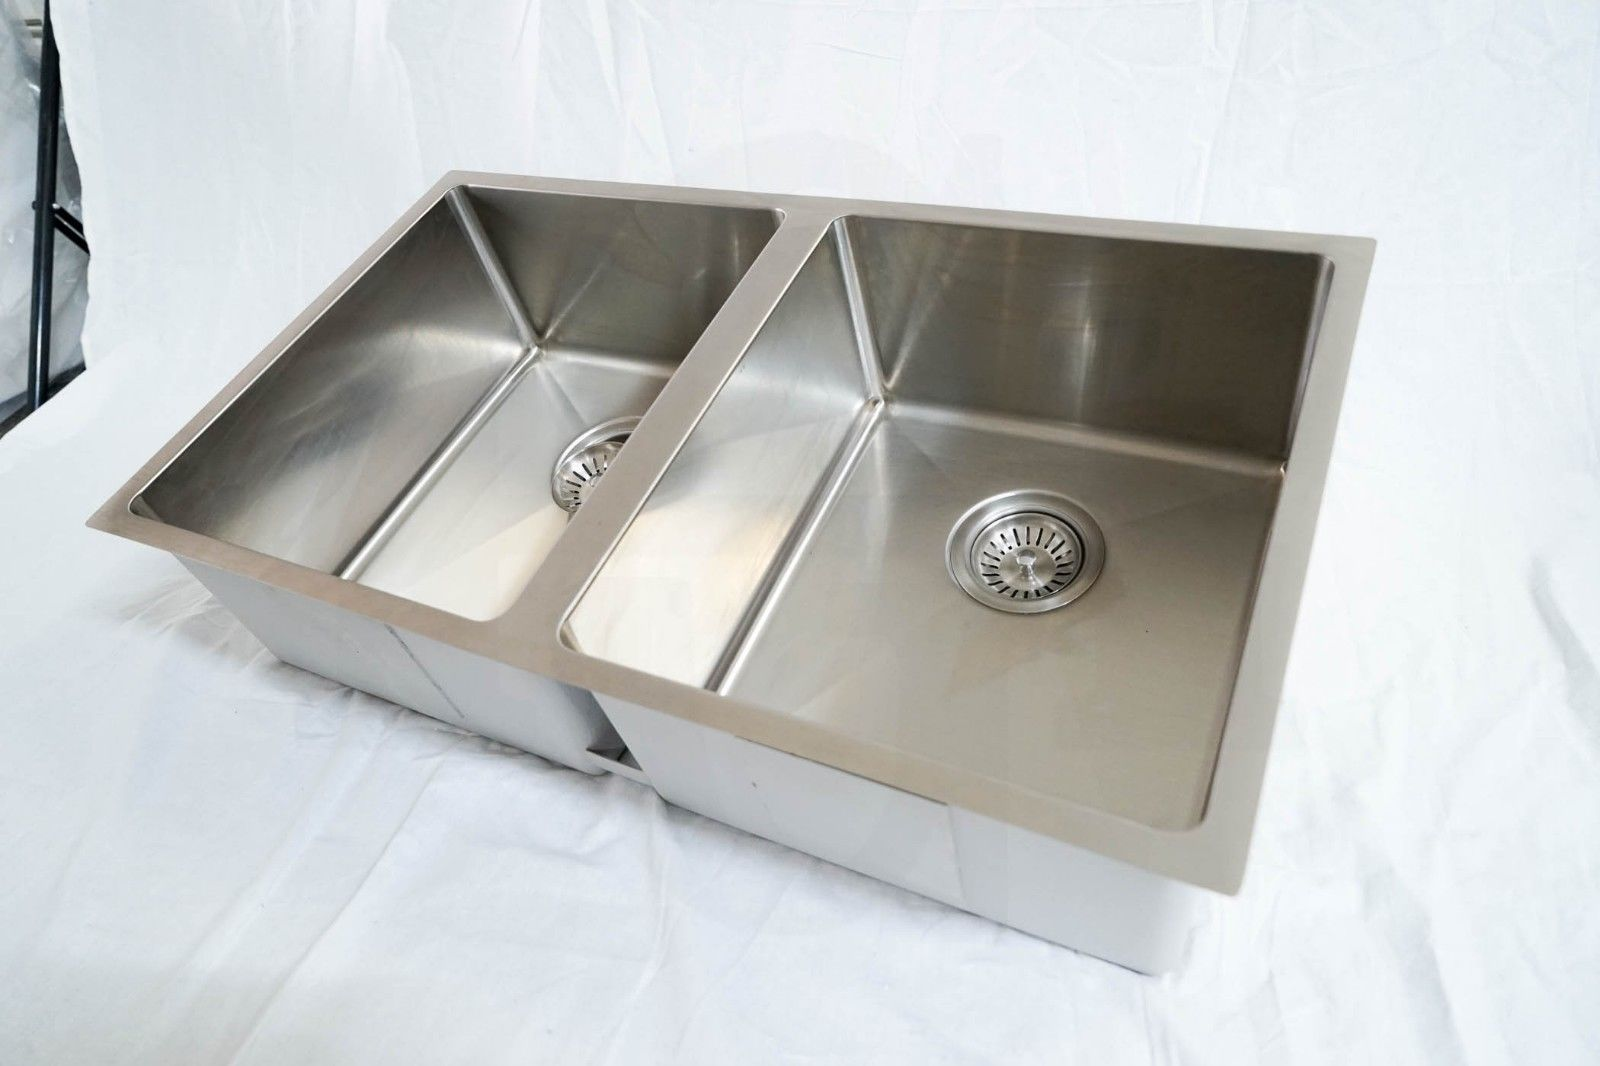 760mm Double Bowl Handmade Stainless Steel Sink With Round